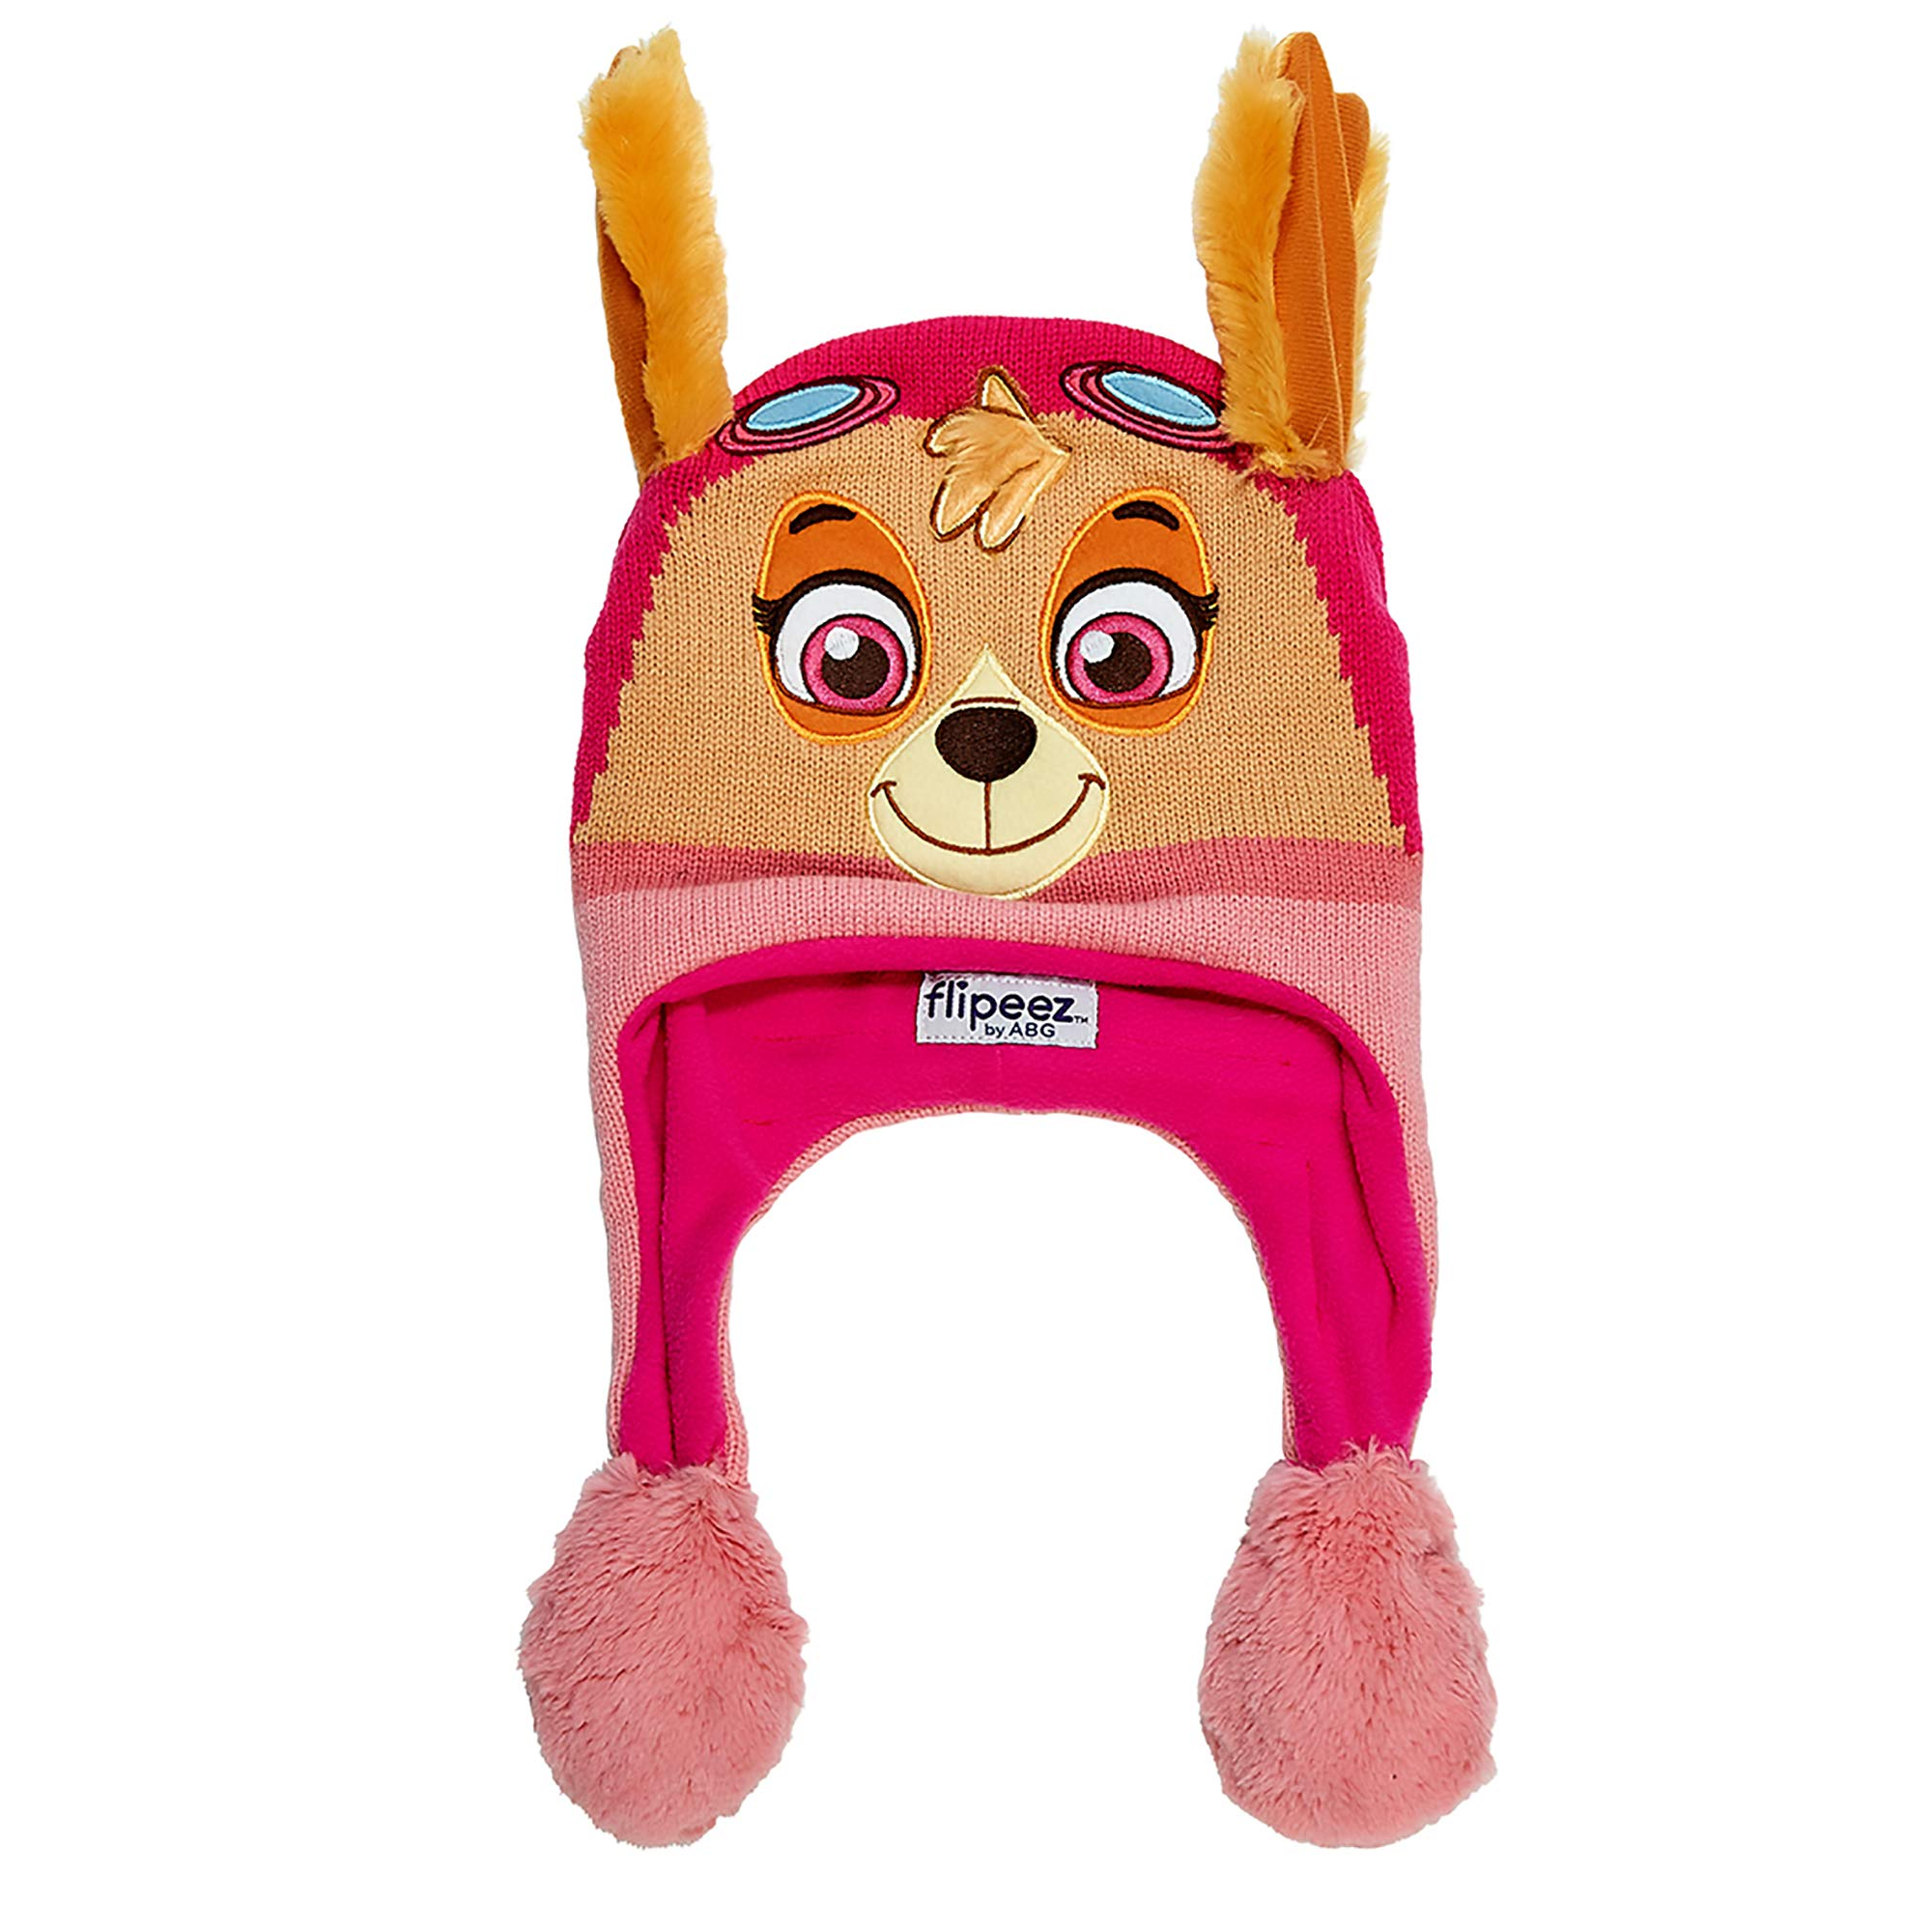 Little Girls Hasbro My Little Pony Squeeze and Flap Fun Cold Weather Hat 4-7